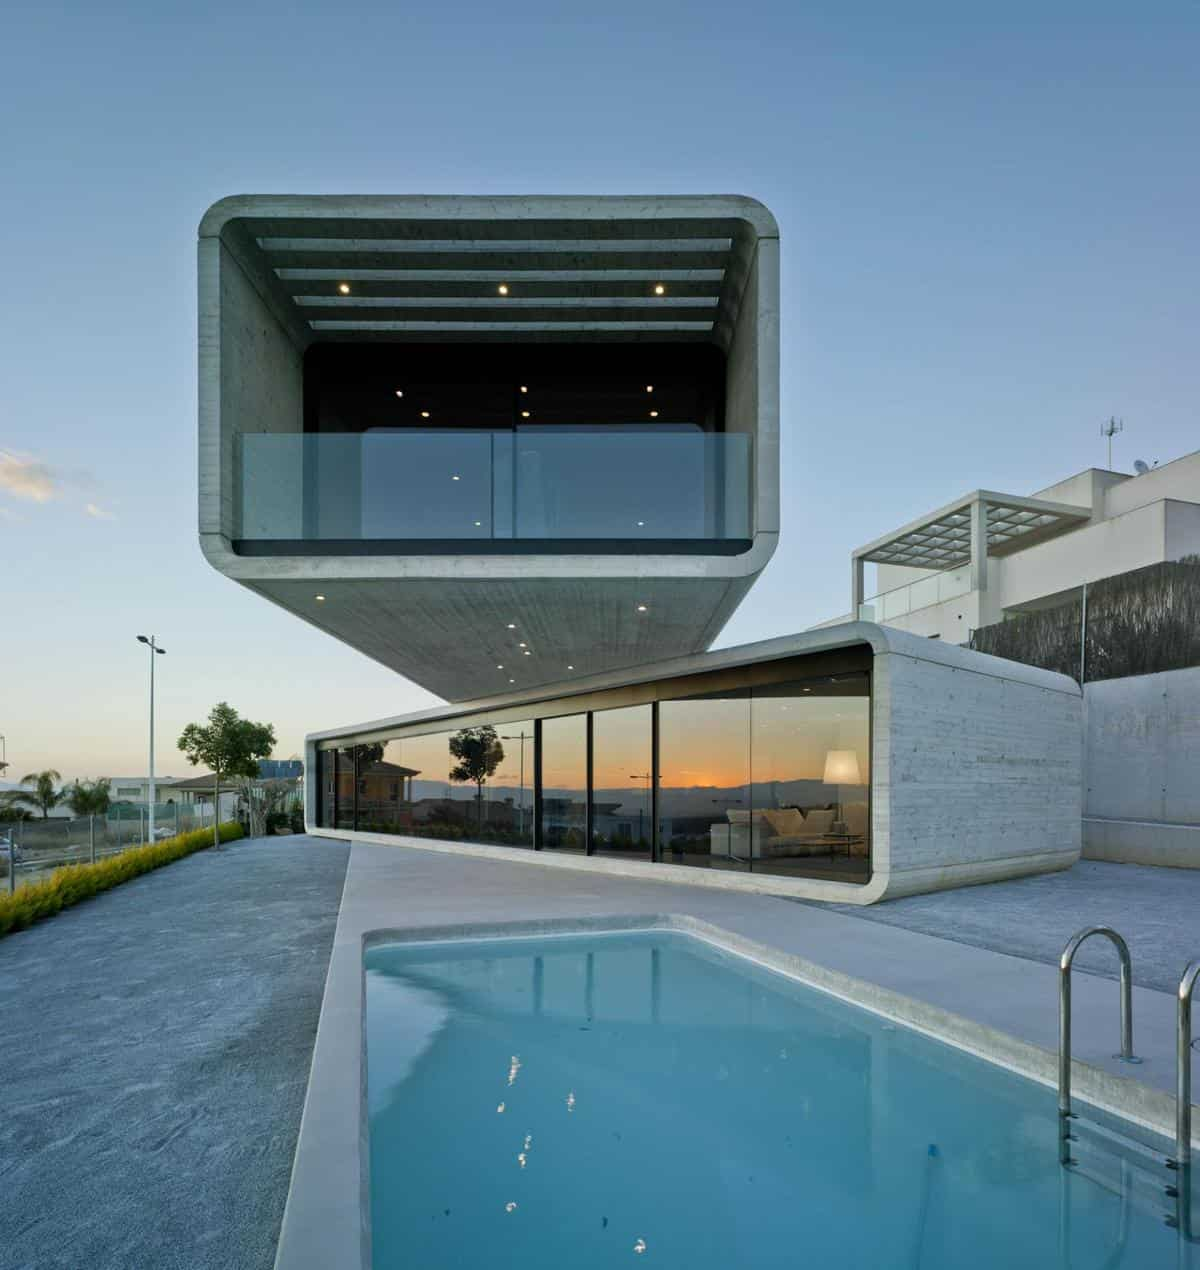 Concrete cantilever house extends 32 feet over the pool for Minimalist house definition